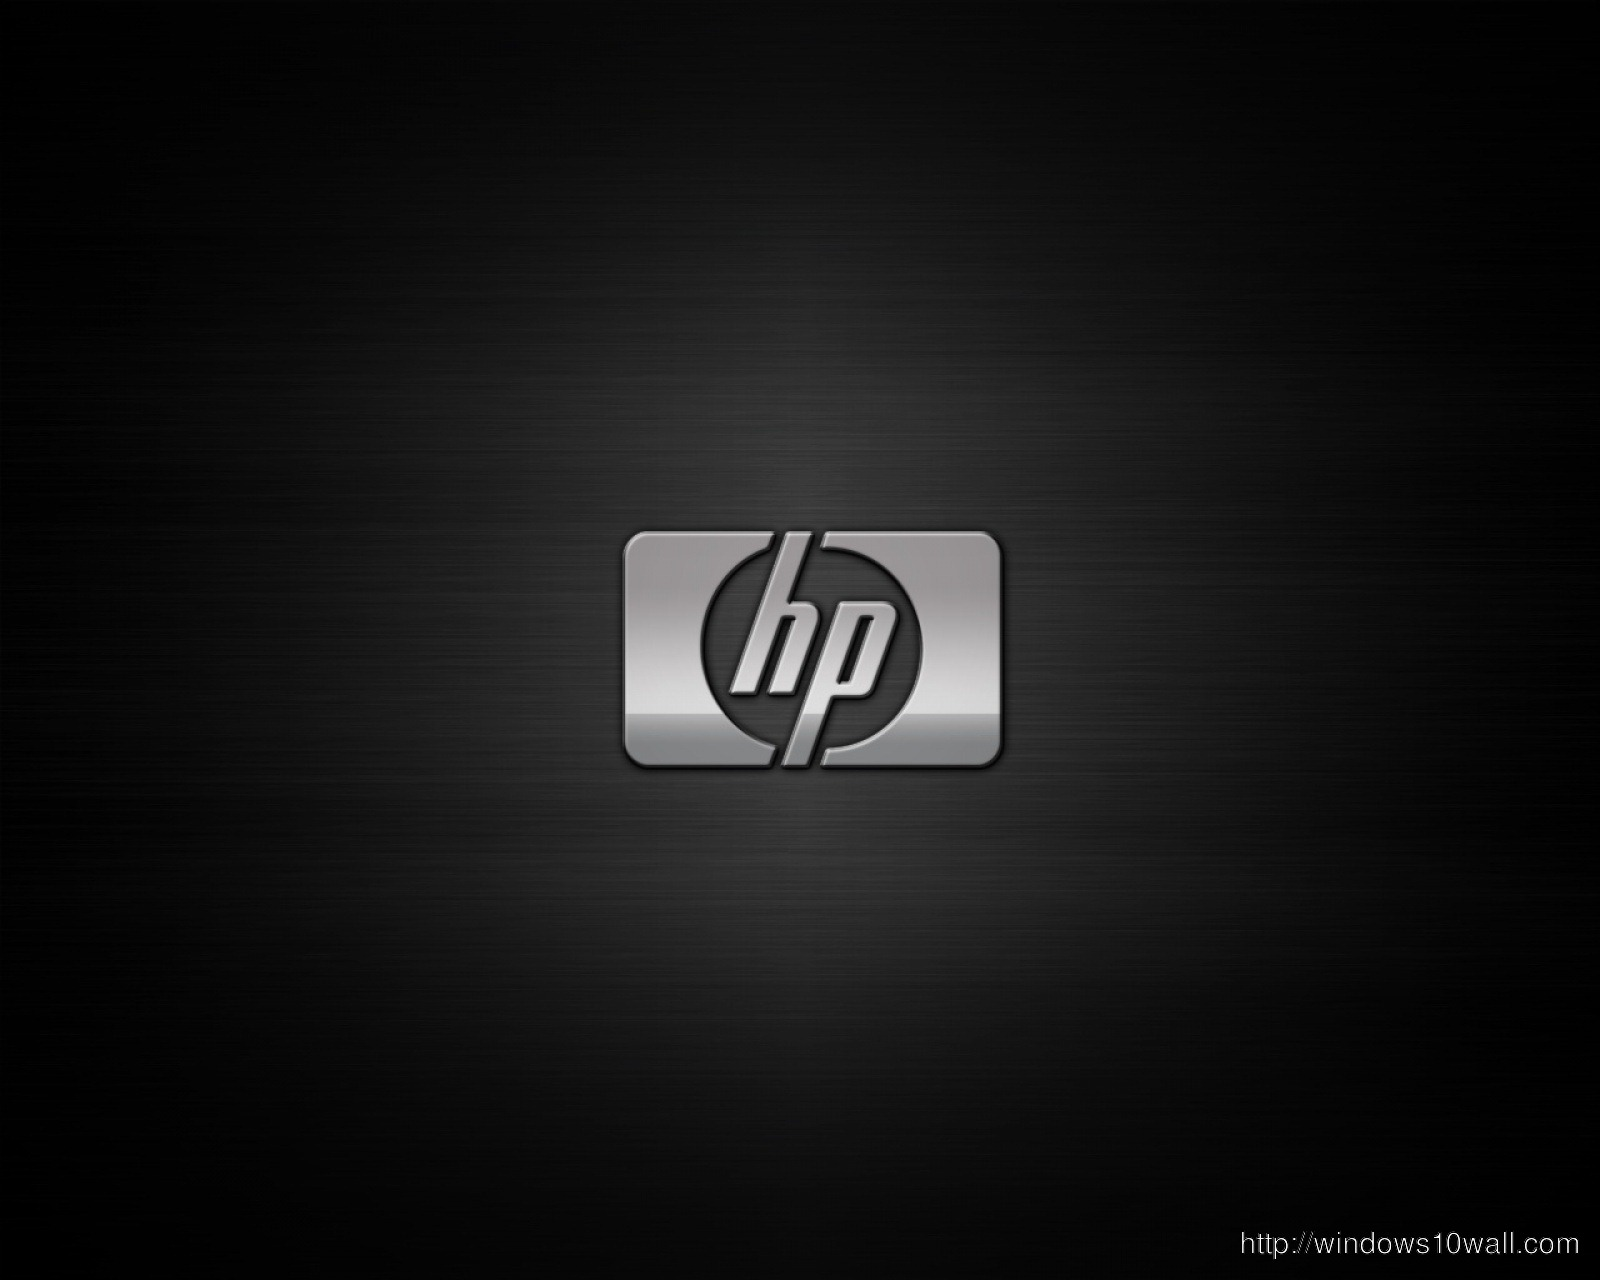 HP In Black Background Wallpaper